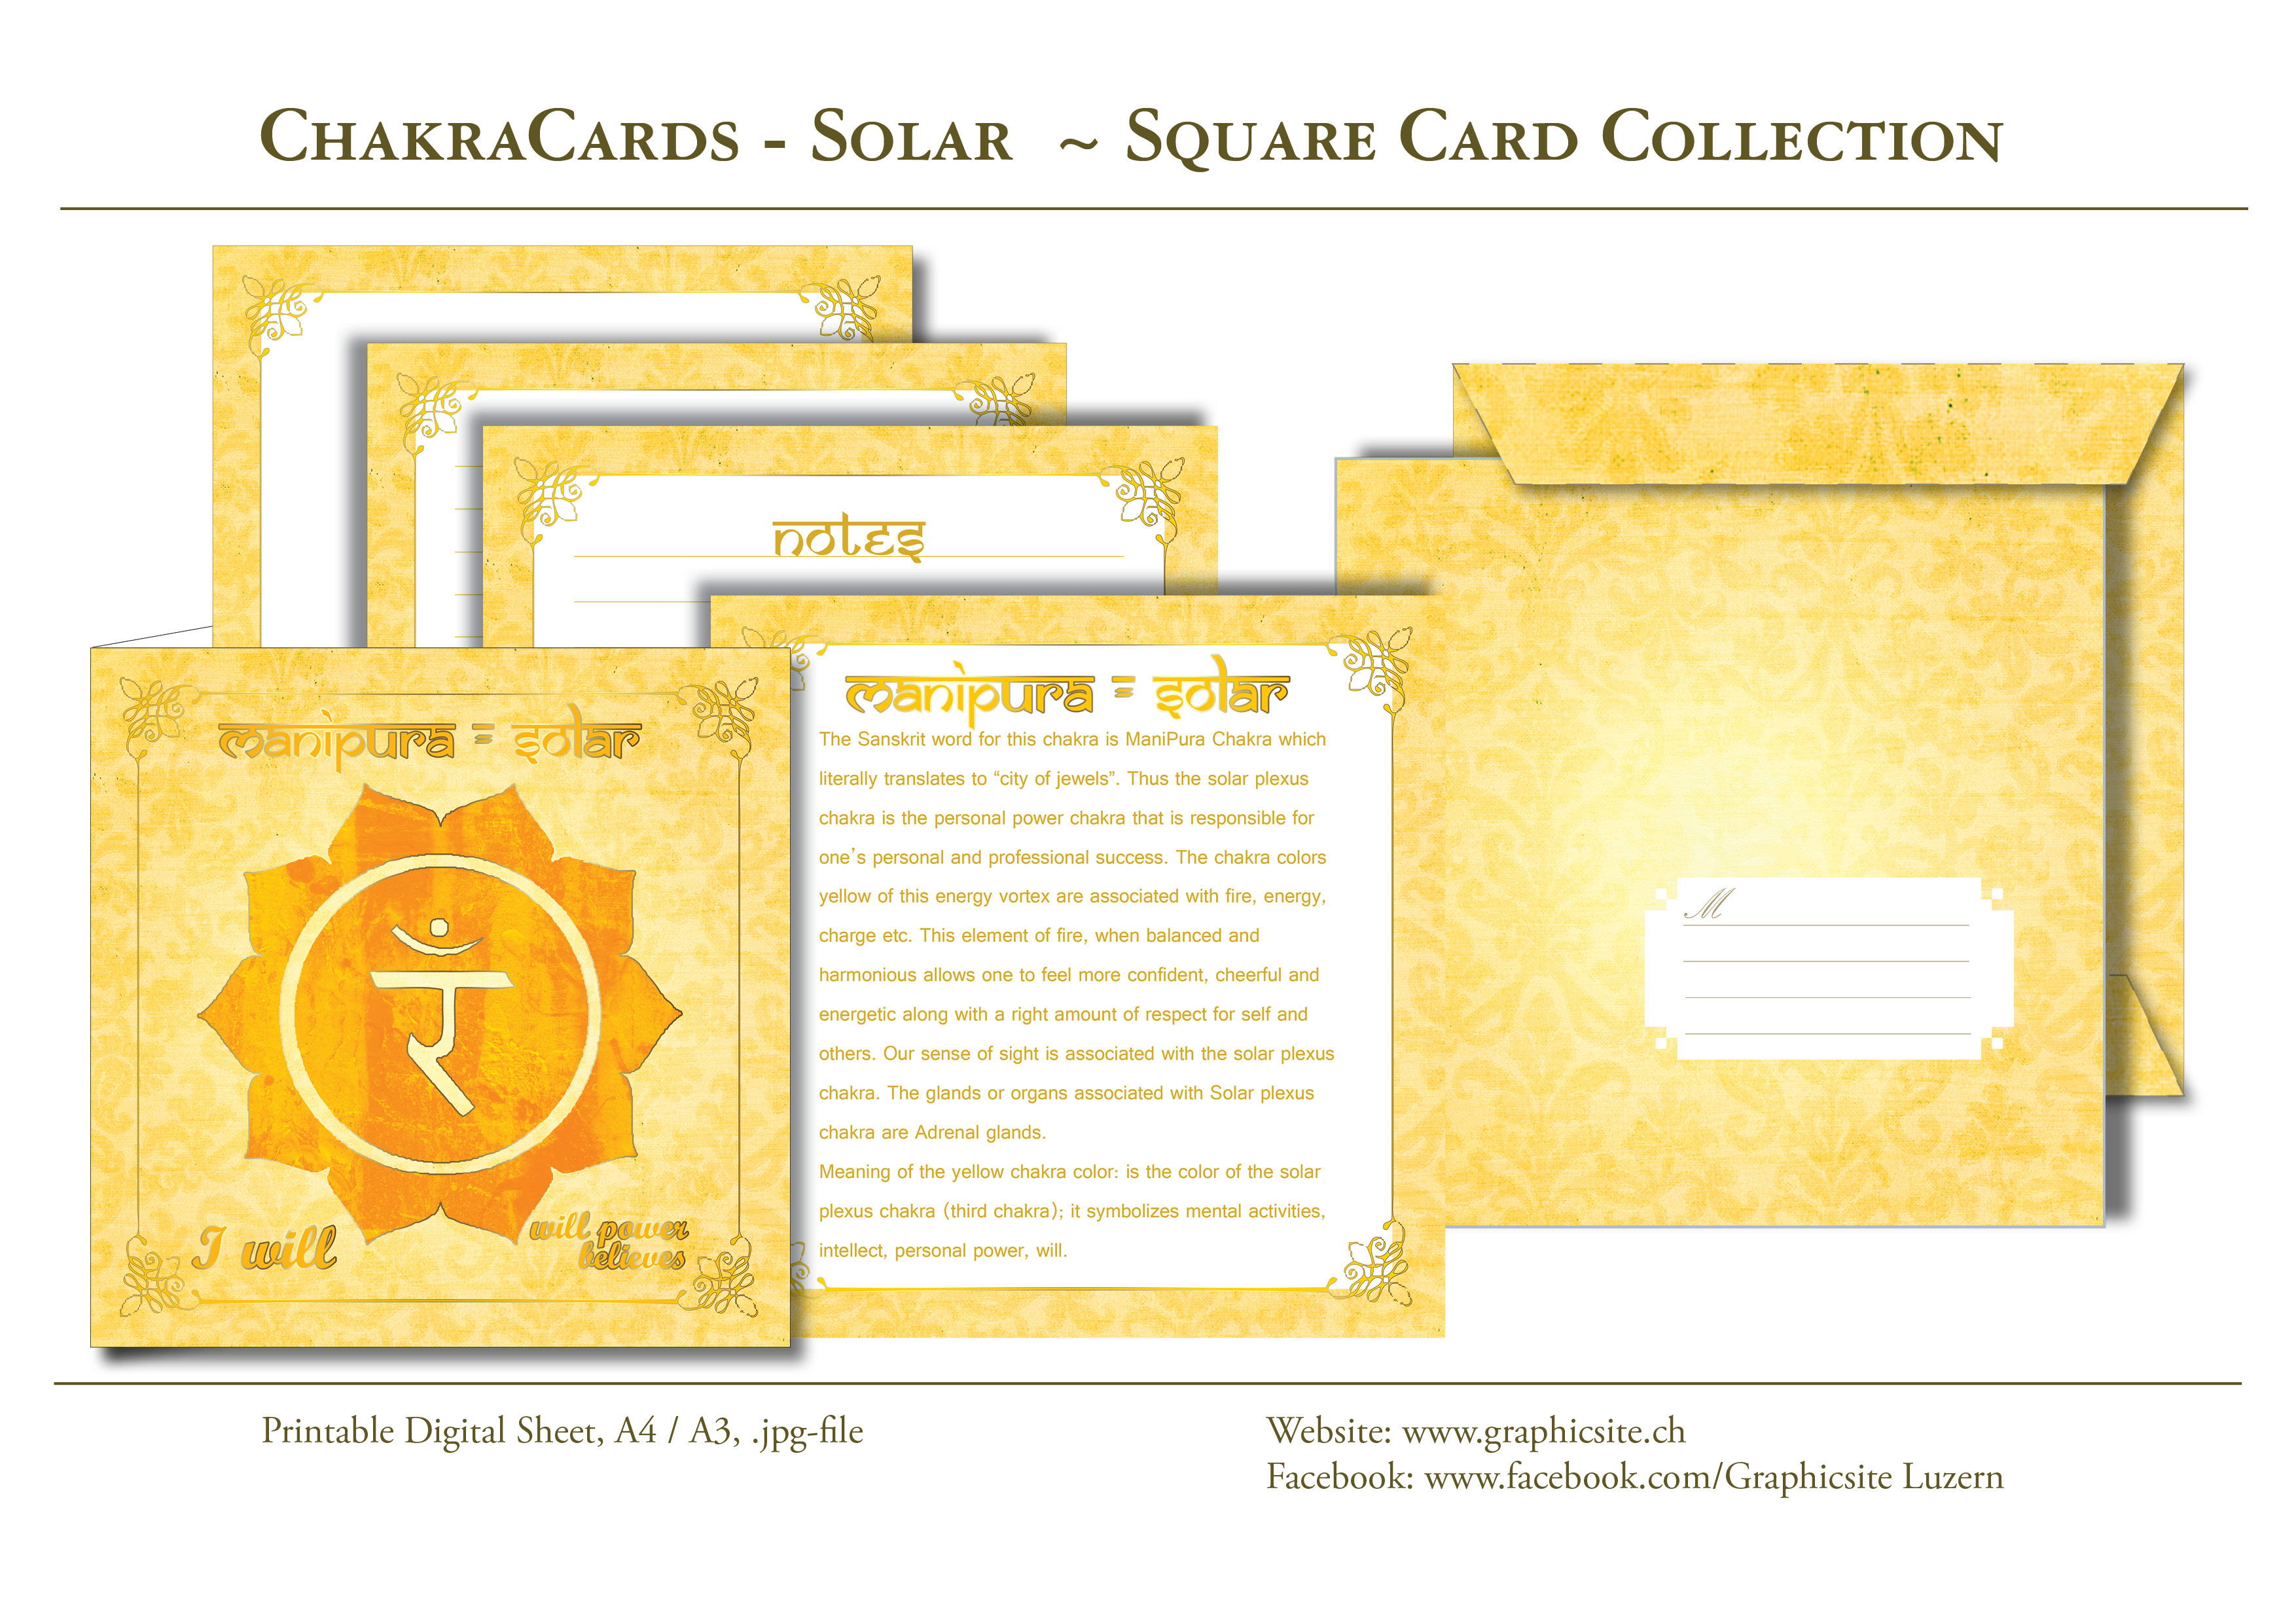 Printable Digital Sheets - Square Card Collections - Chakra Cards, Manipura, Solar,